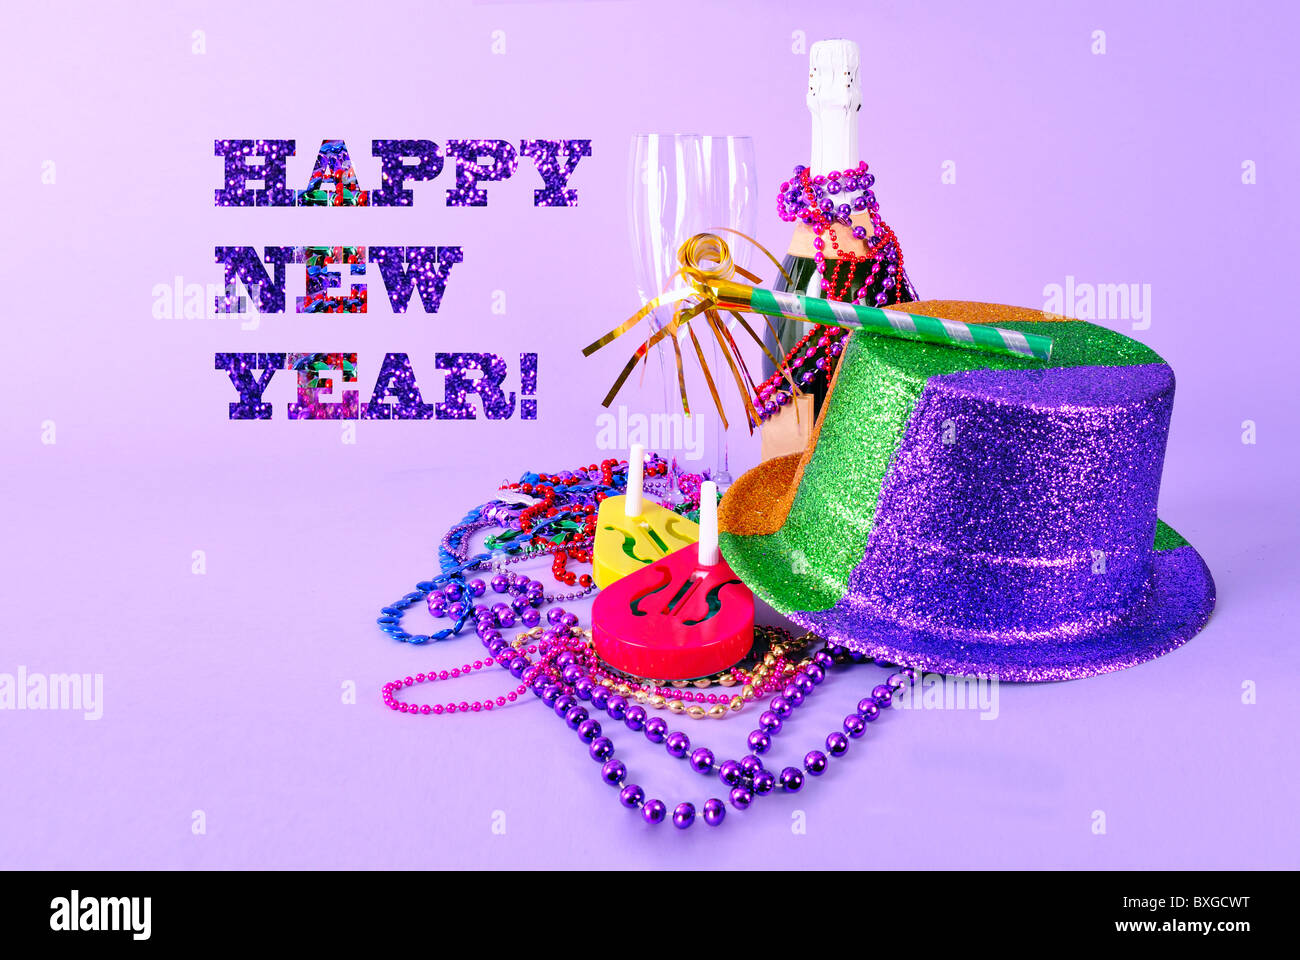 Happy New Year card New Years Eve invitation 2011 with party favors and champagne bottle flutes noisemakers party - Stock Image